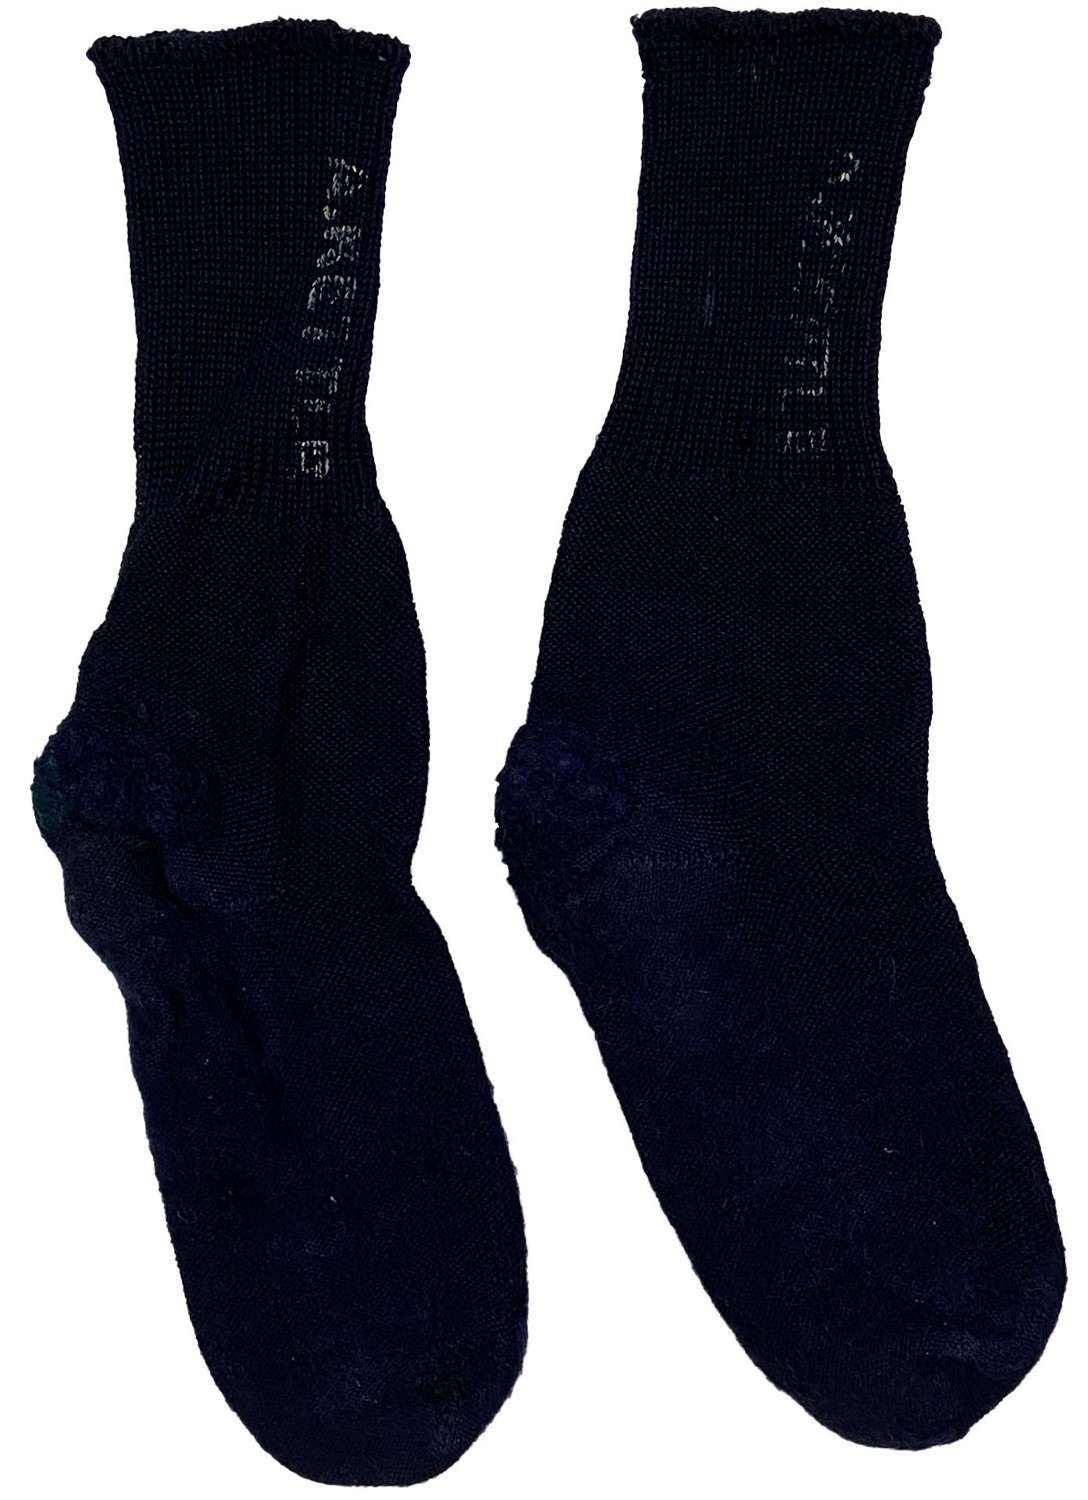 Original Royal Navy Woollen Socks